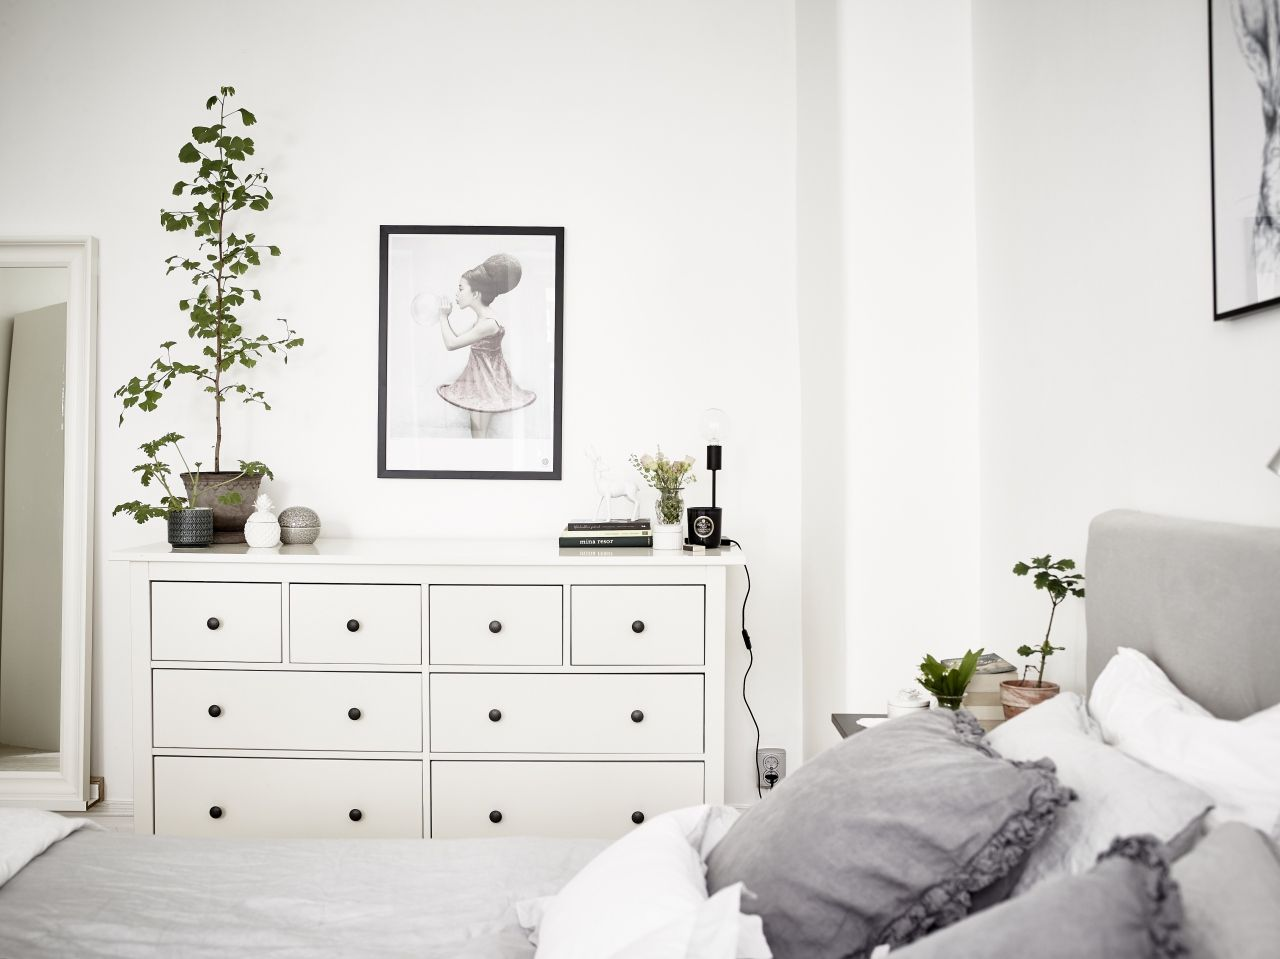 12 best interior design finds at ikea laurel wolf - White Bedroom Dresser